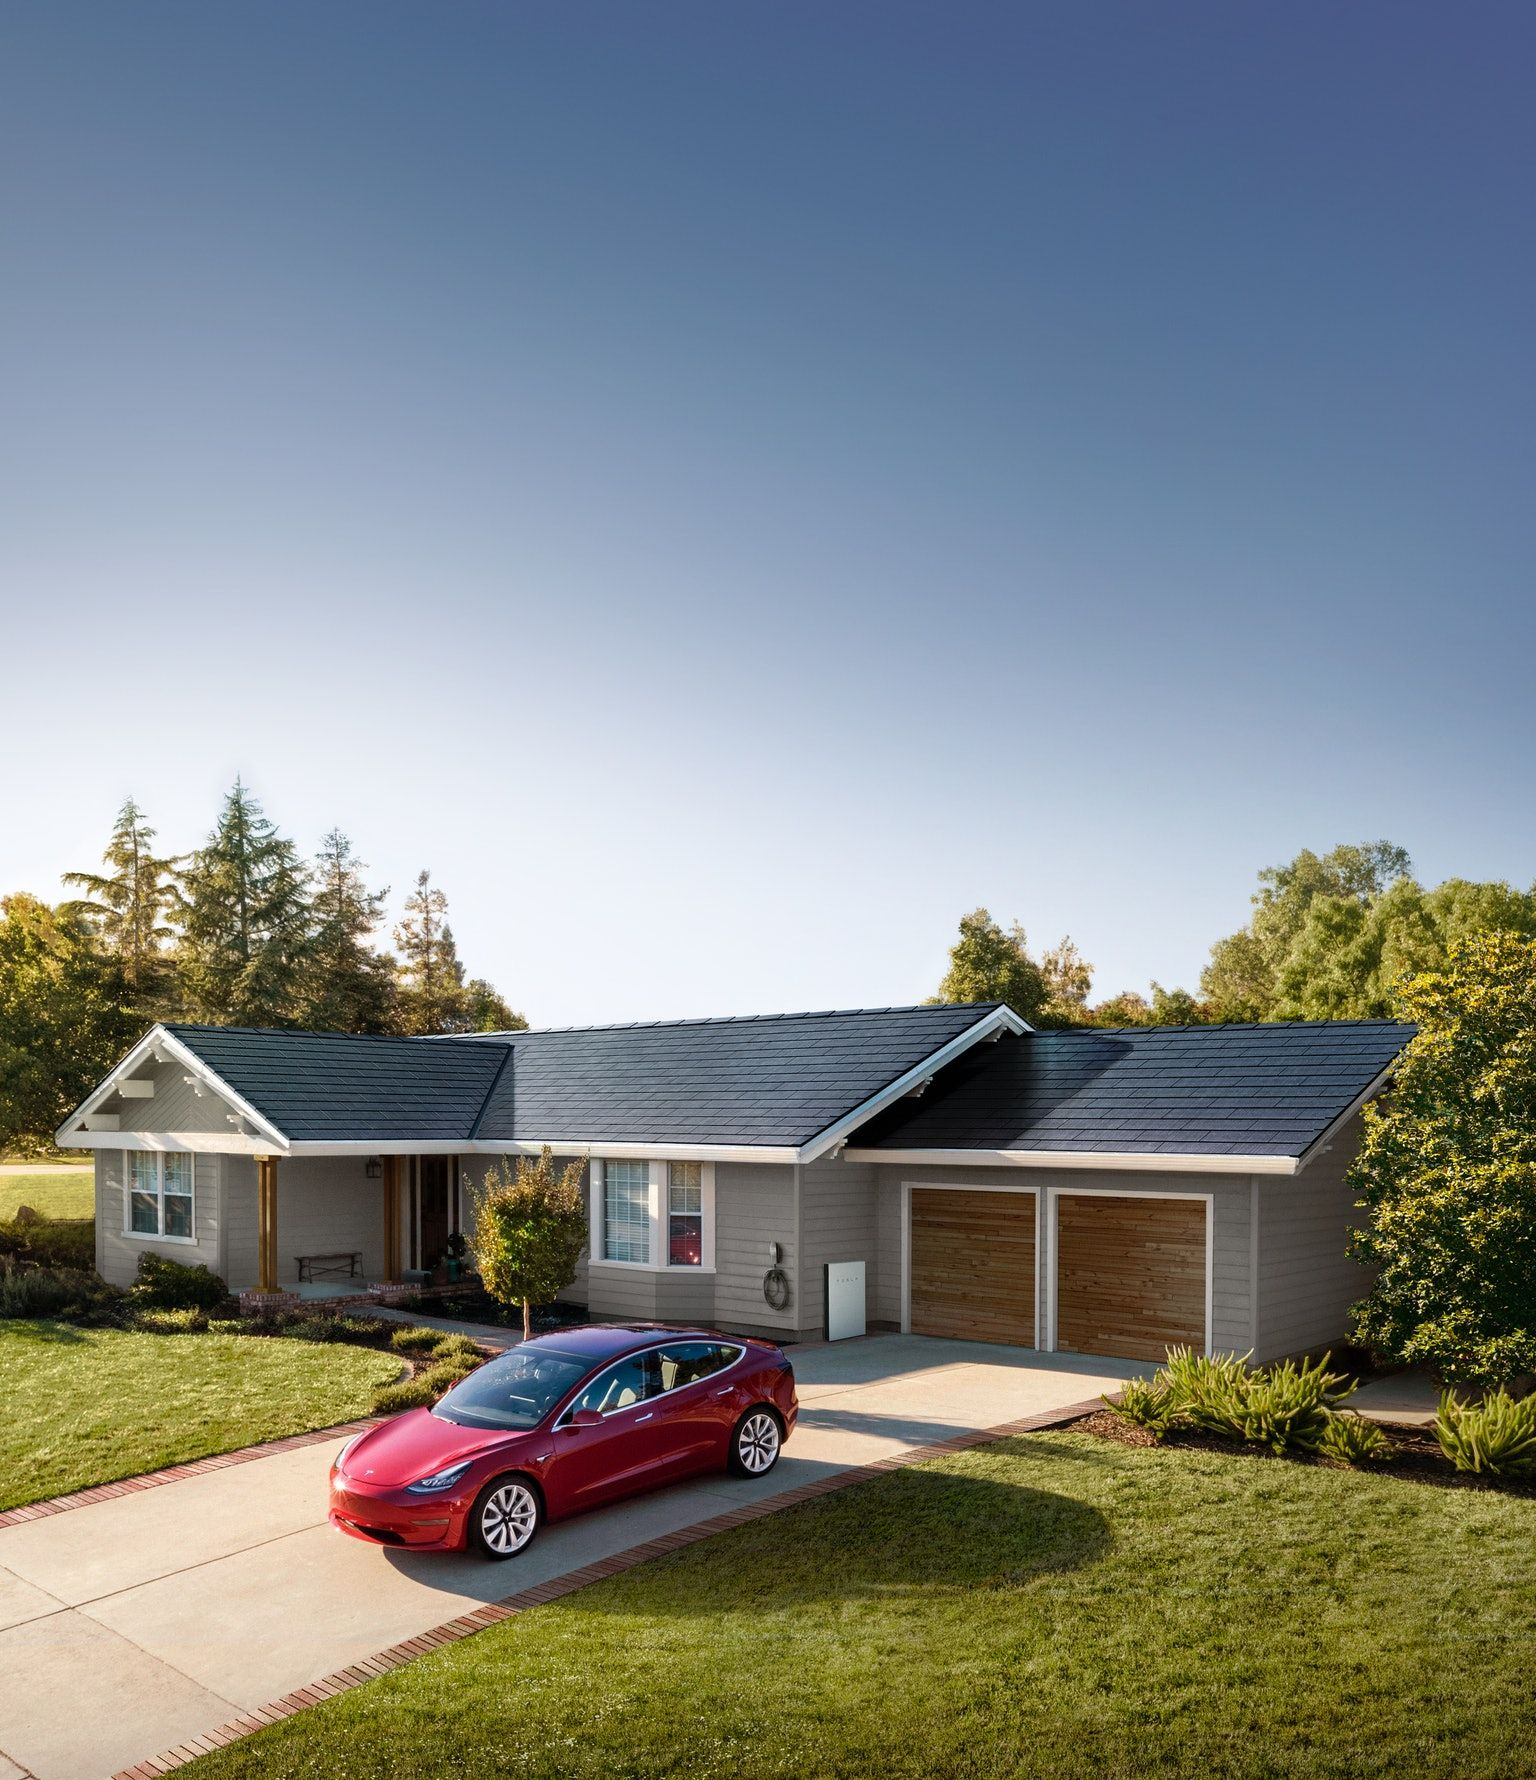 Tesla Solar Roof How To Buy Install Times Pricing And Availability In 2020 Tesla Solar Roof Solar Roof Solar